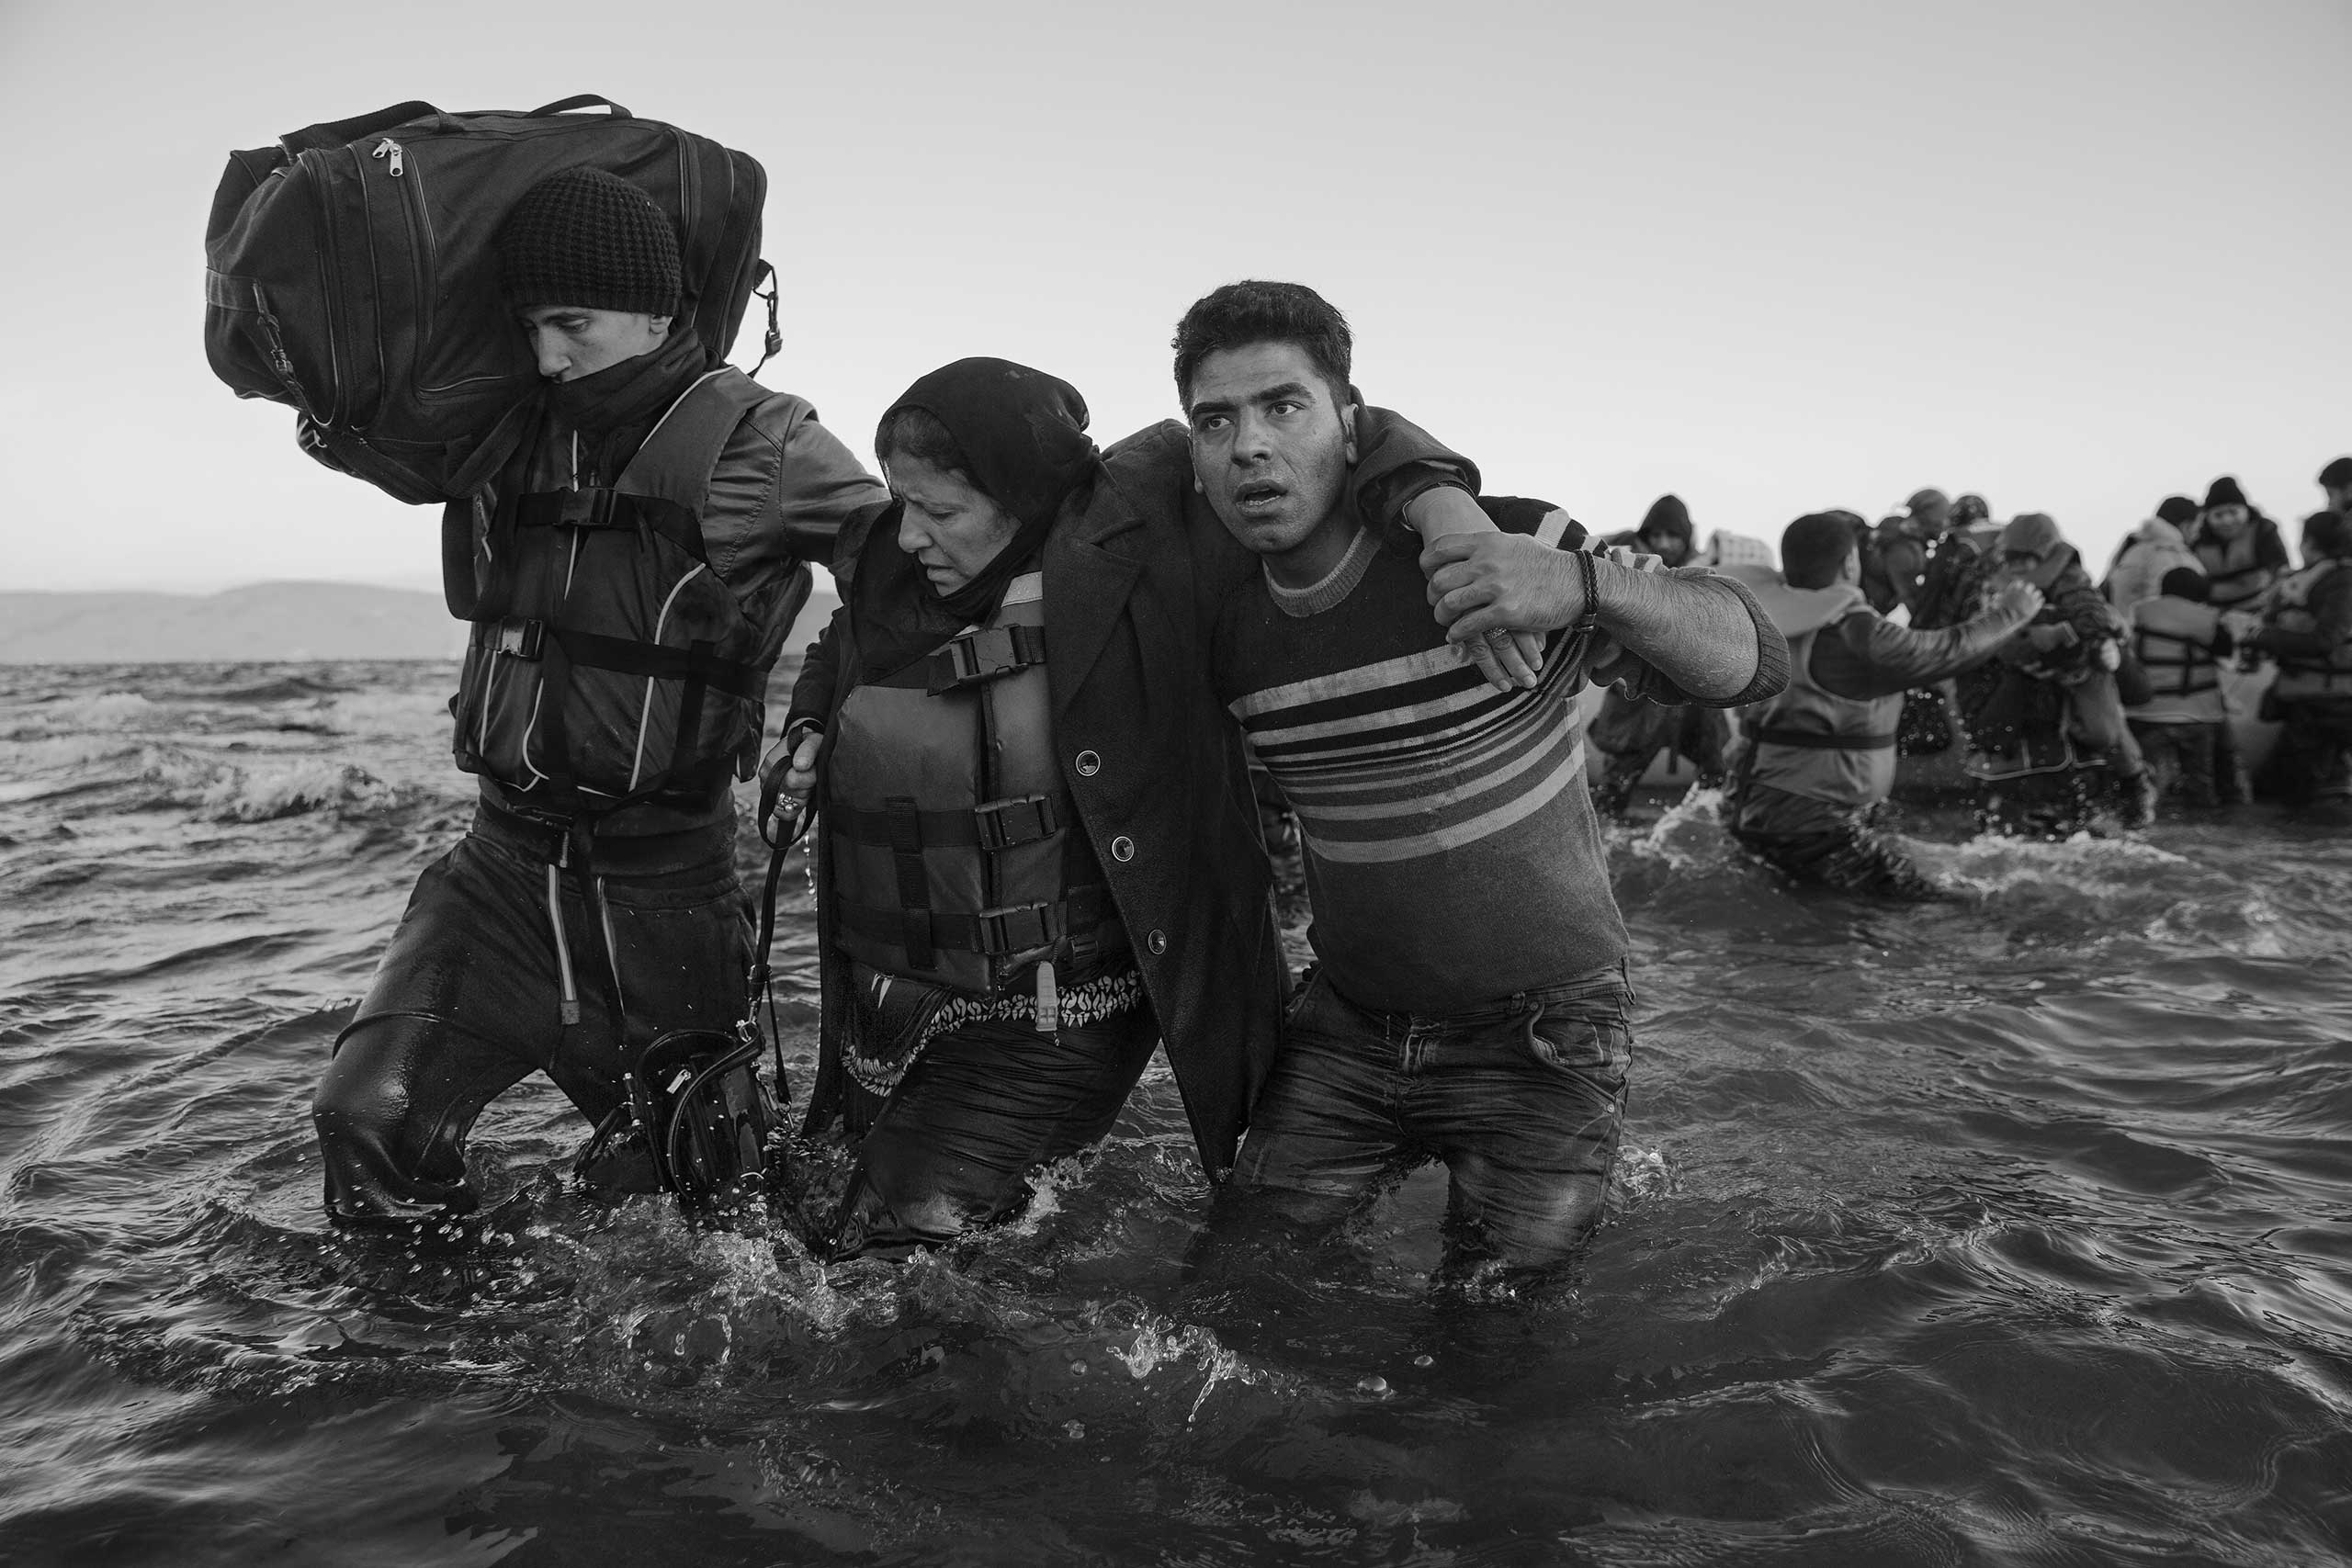 Refugees from Syria, Afghanistan, Pakistan, Somalia, Iran cross the sea between Turkey and Greece by means of inflatable pontoon rafts to the island of Lesbos as the first step in making their way across Europe.